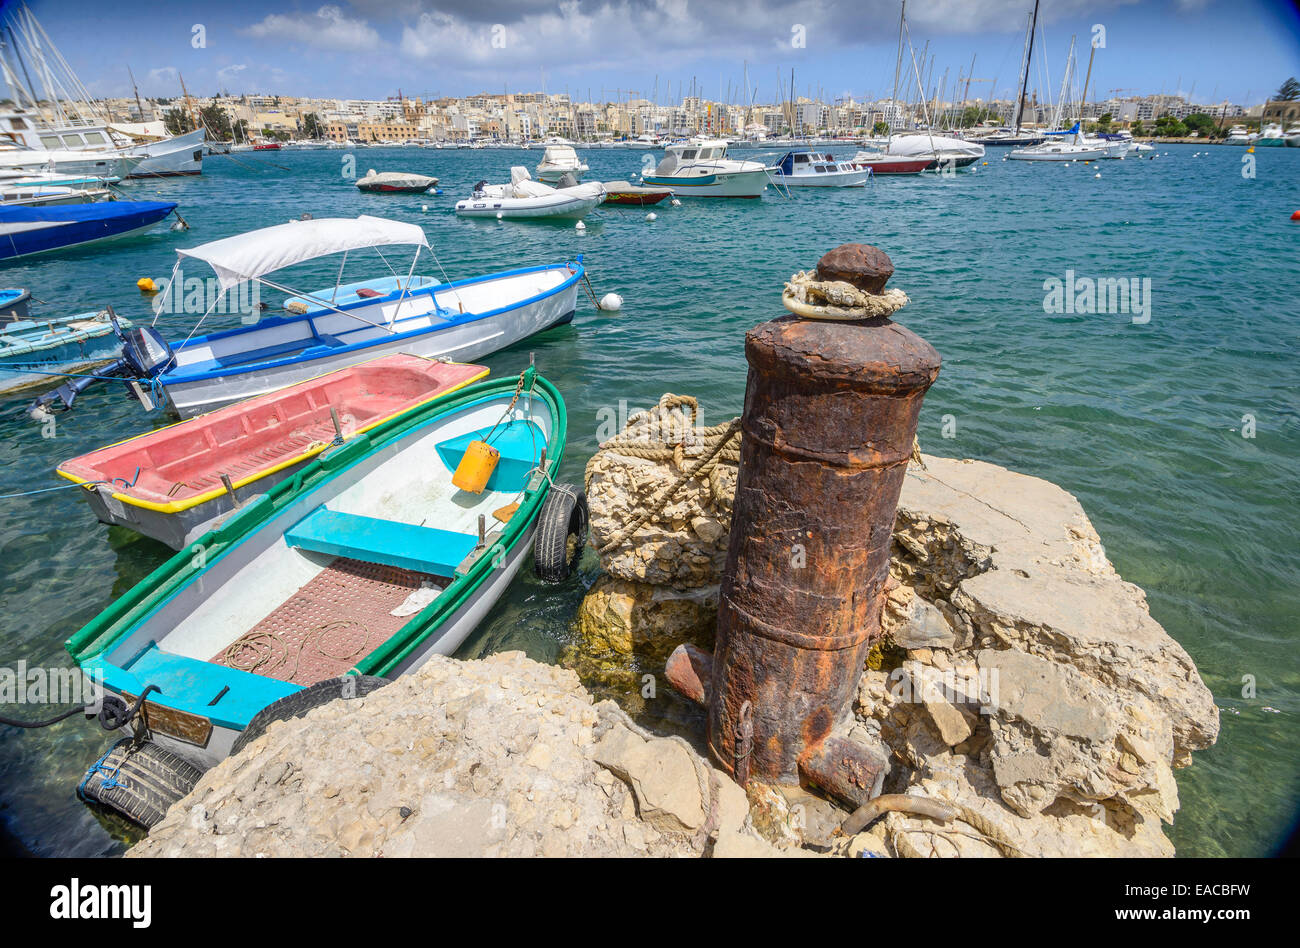 Naval canon from the Napoleonic era used as mooring posts around the Grand Harbour in Malta. - Stock Image